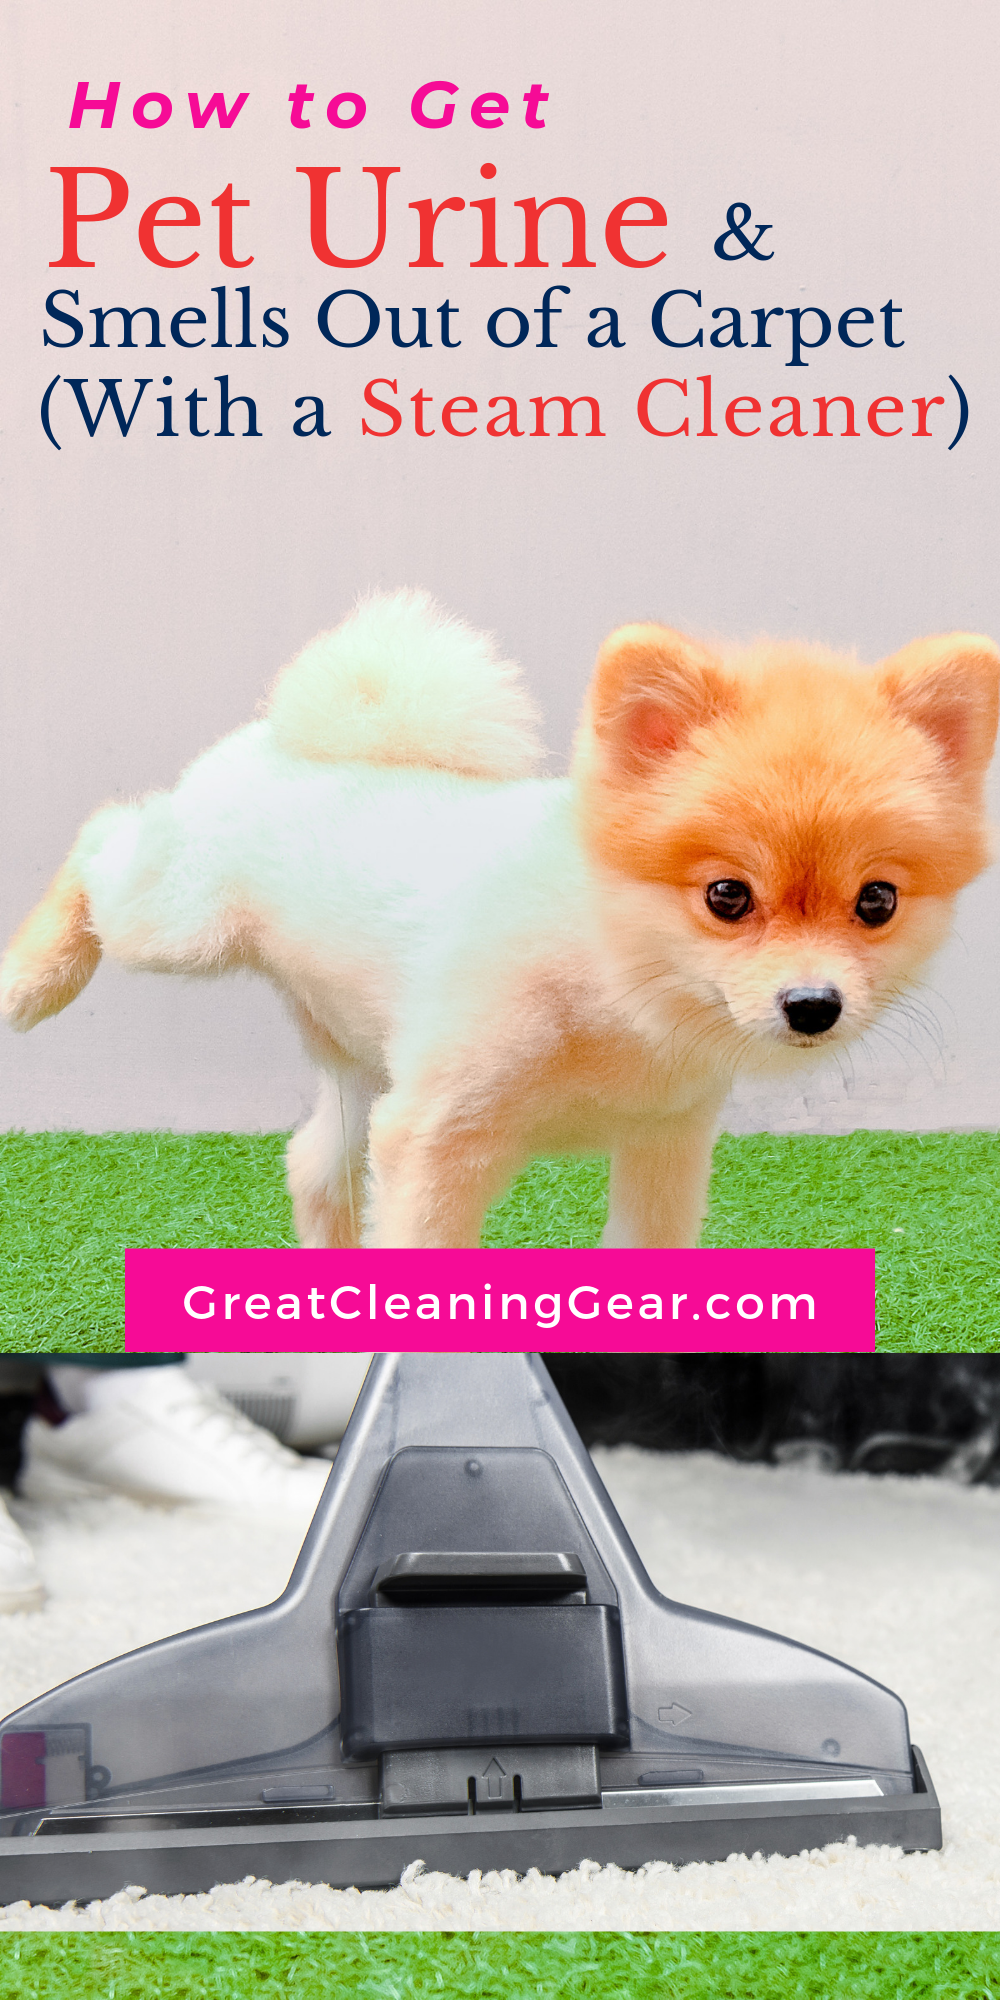 How To Steam Clean Carpet To Remove Dog Urine Steam Cleaners Steam Clean Carpet Carpet Steam Cleaner